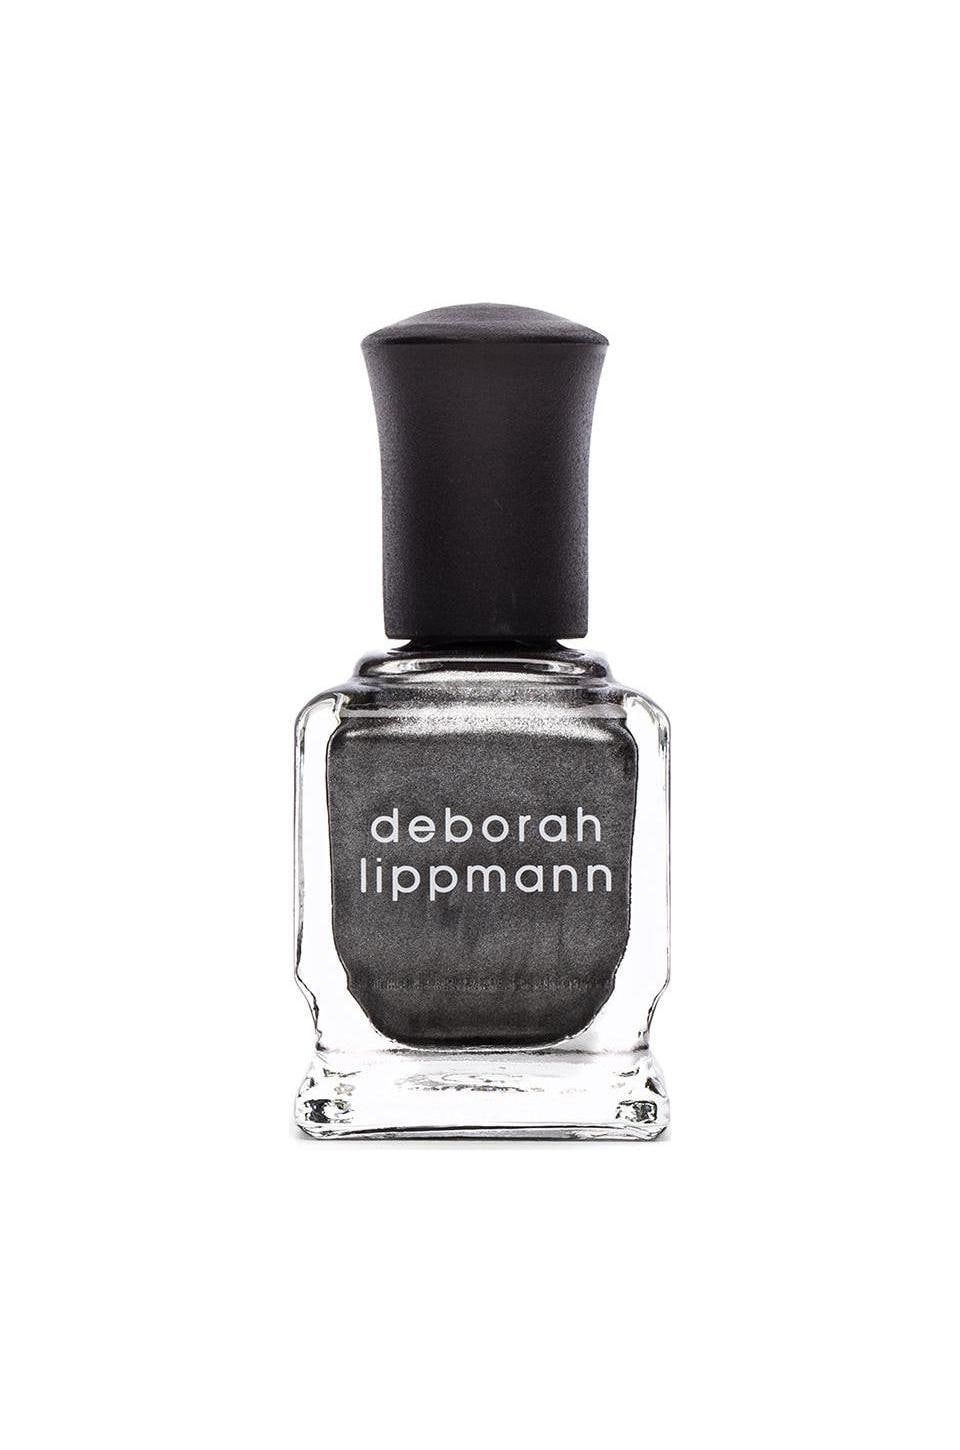 Deborah Lippmann High Shine Lacquer in Take The